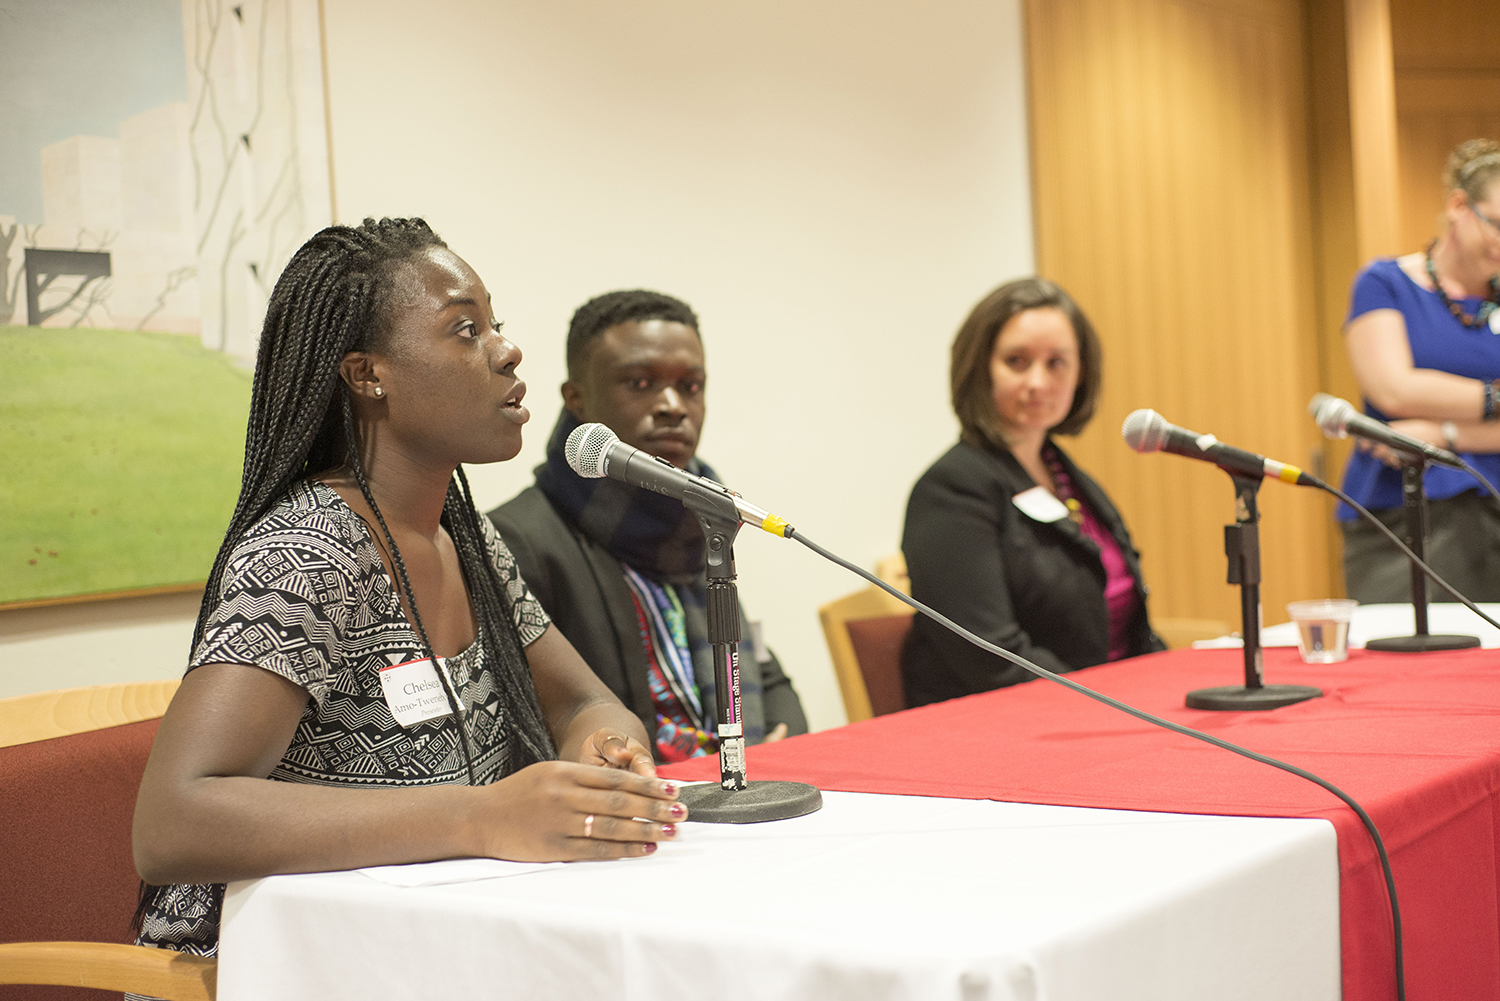 Tiffany Aquino of Unite for Sight; Shadrack Frimpong of Healthy Africa; and Chelsea Tweneboah '15 of Cape Coast Regional Hospital in Ghana participated in a healthcare panel. The talk was moderated by Laura Ann Twagira, assistant professor of history.